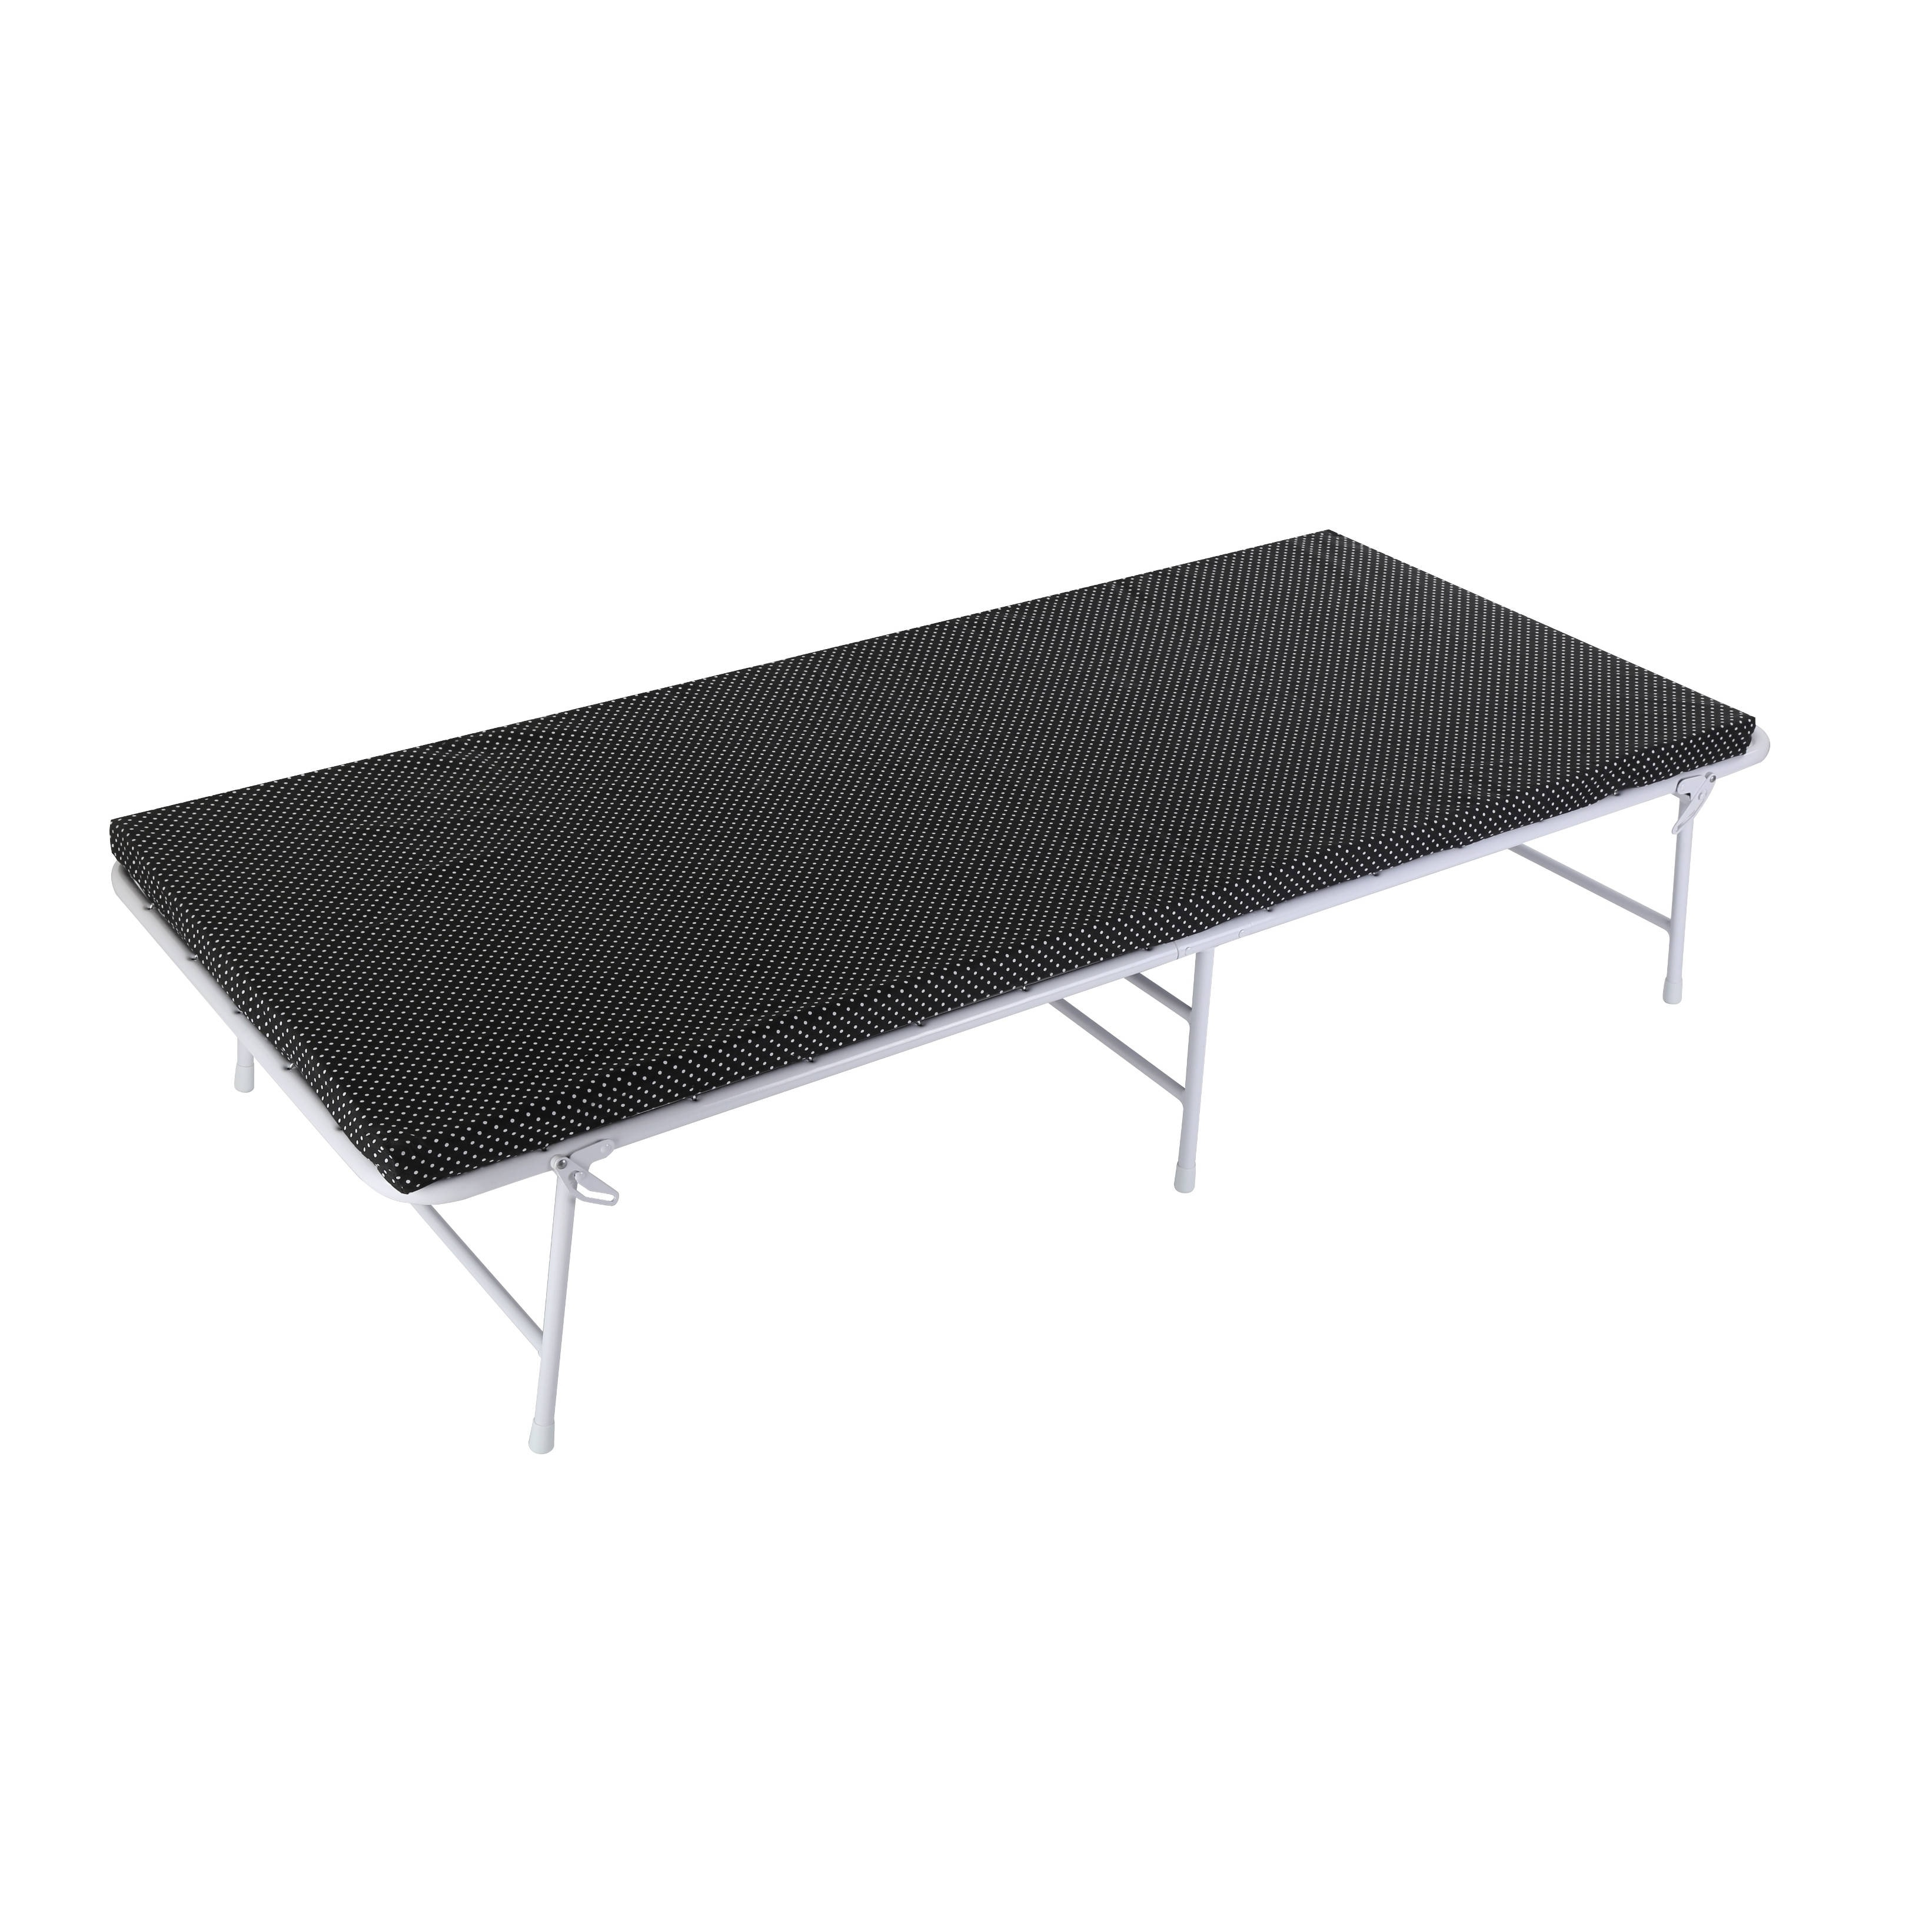 Nova Furniture Group Camping Cot with Foam Mattress Black by Overstock